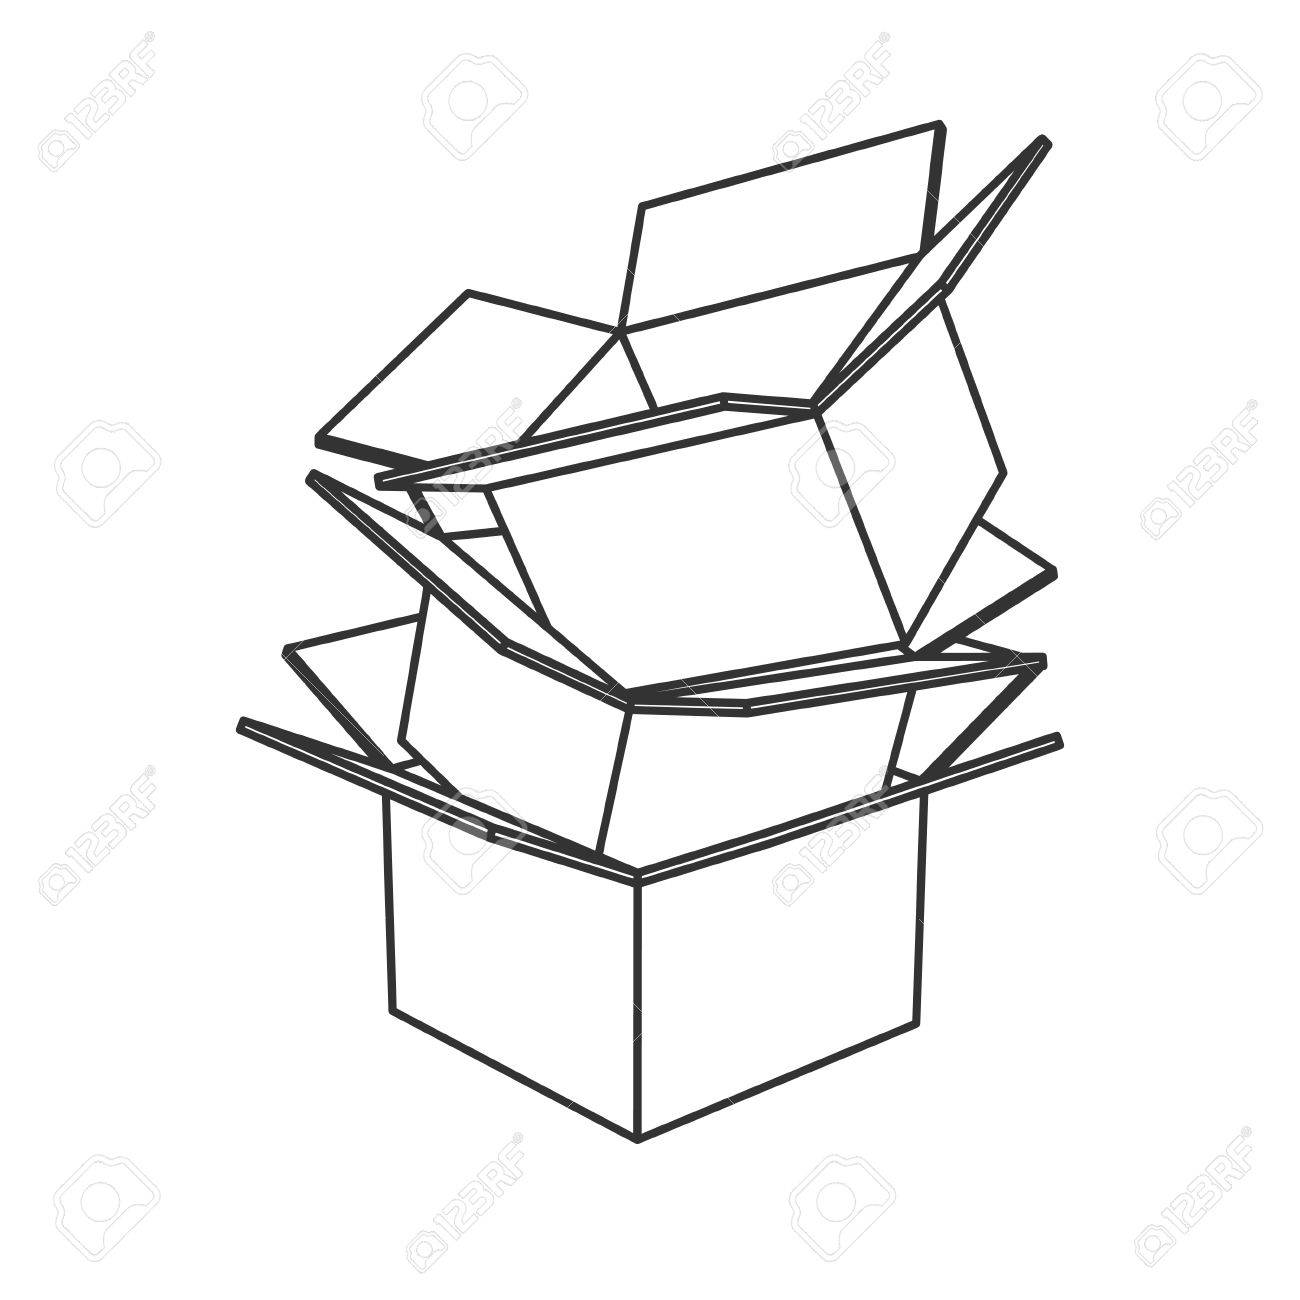 1300x1300 Cereal Drawing Cardboard Box Line For Free Download